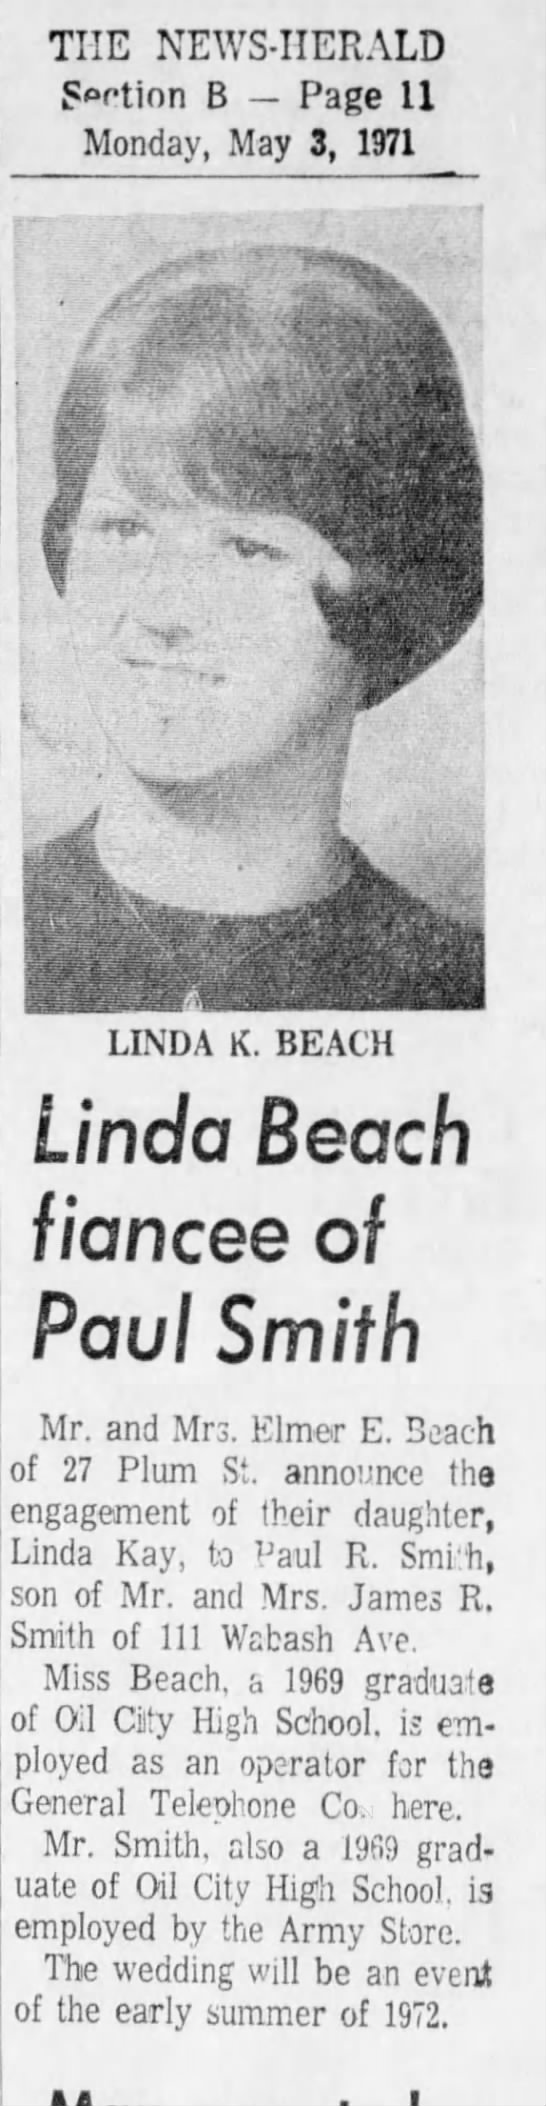 Linda Beach & Paul Smith engagement announcement May 1971 - THE NEWS-HERALD NEWS-HERALD NEWS-HERALD Srtion...